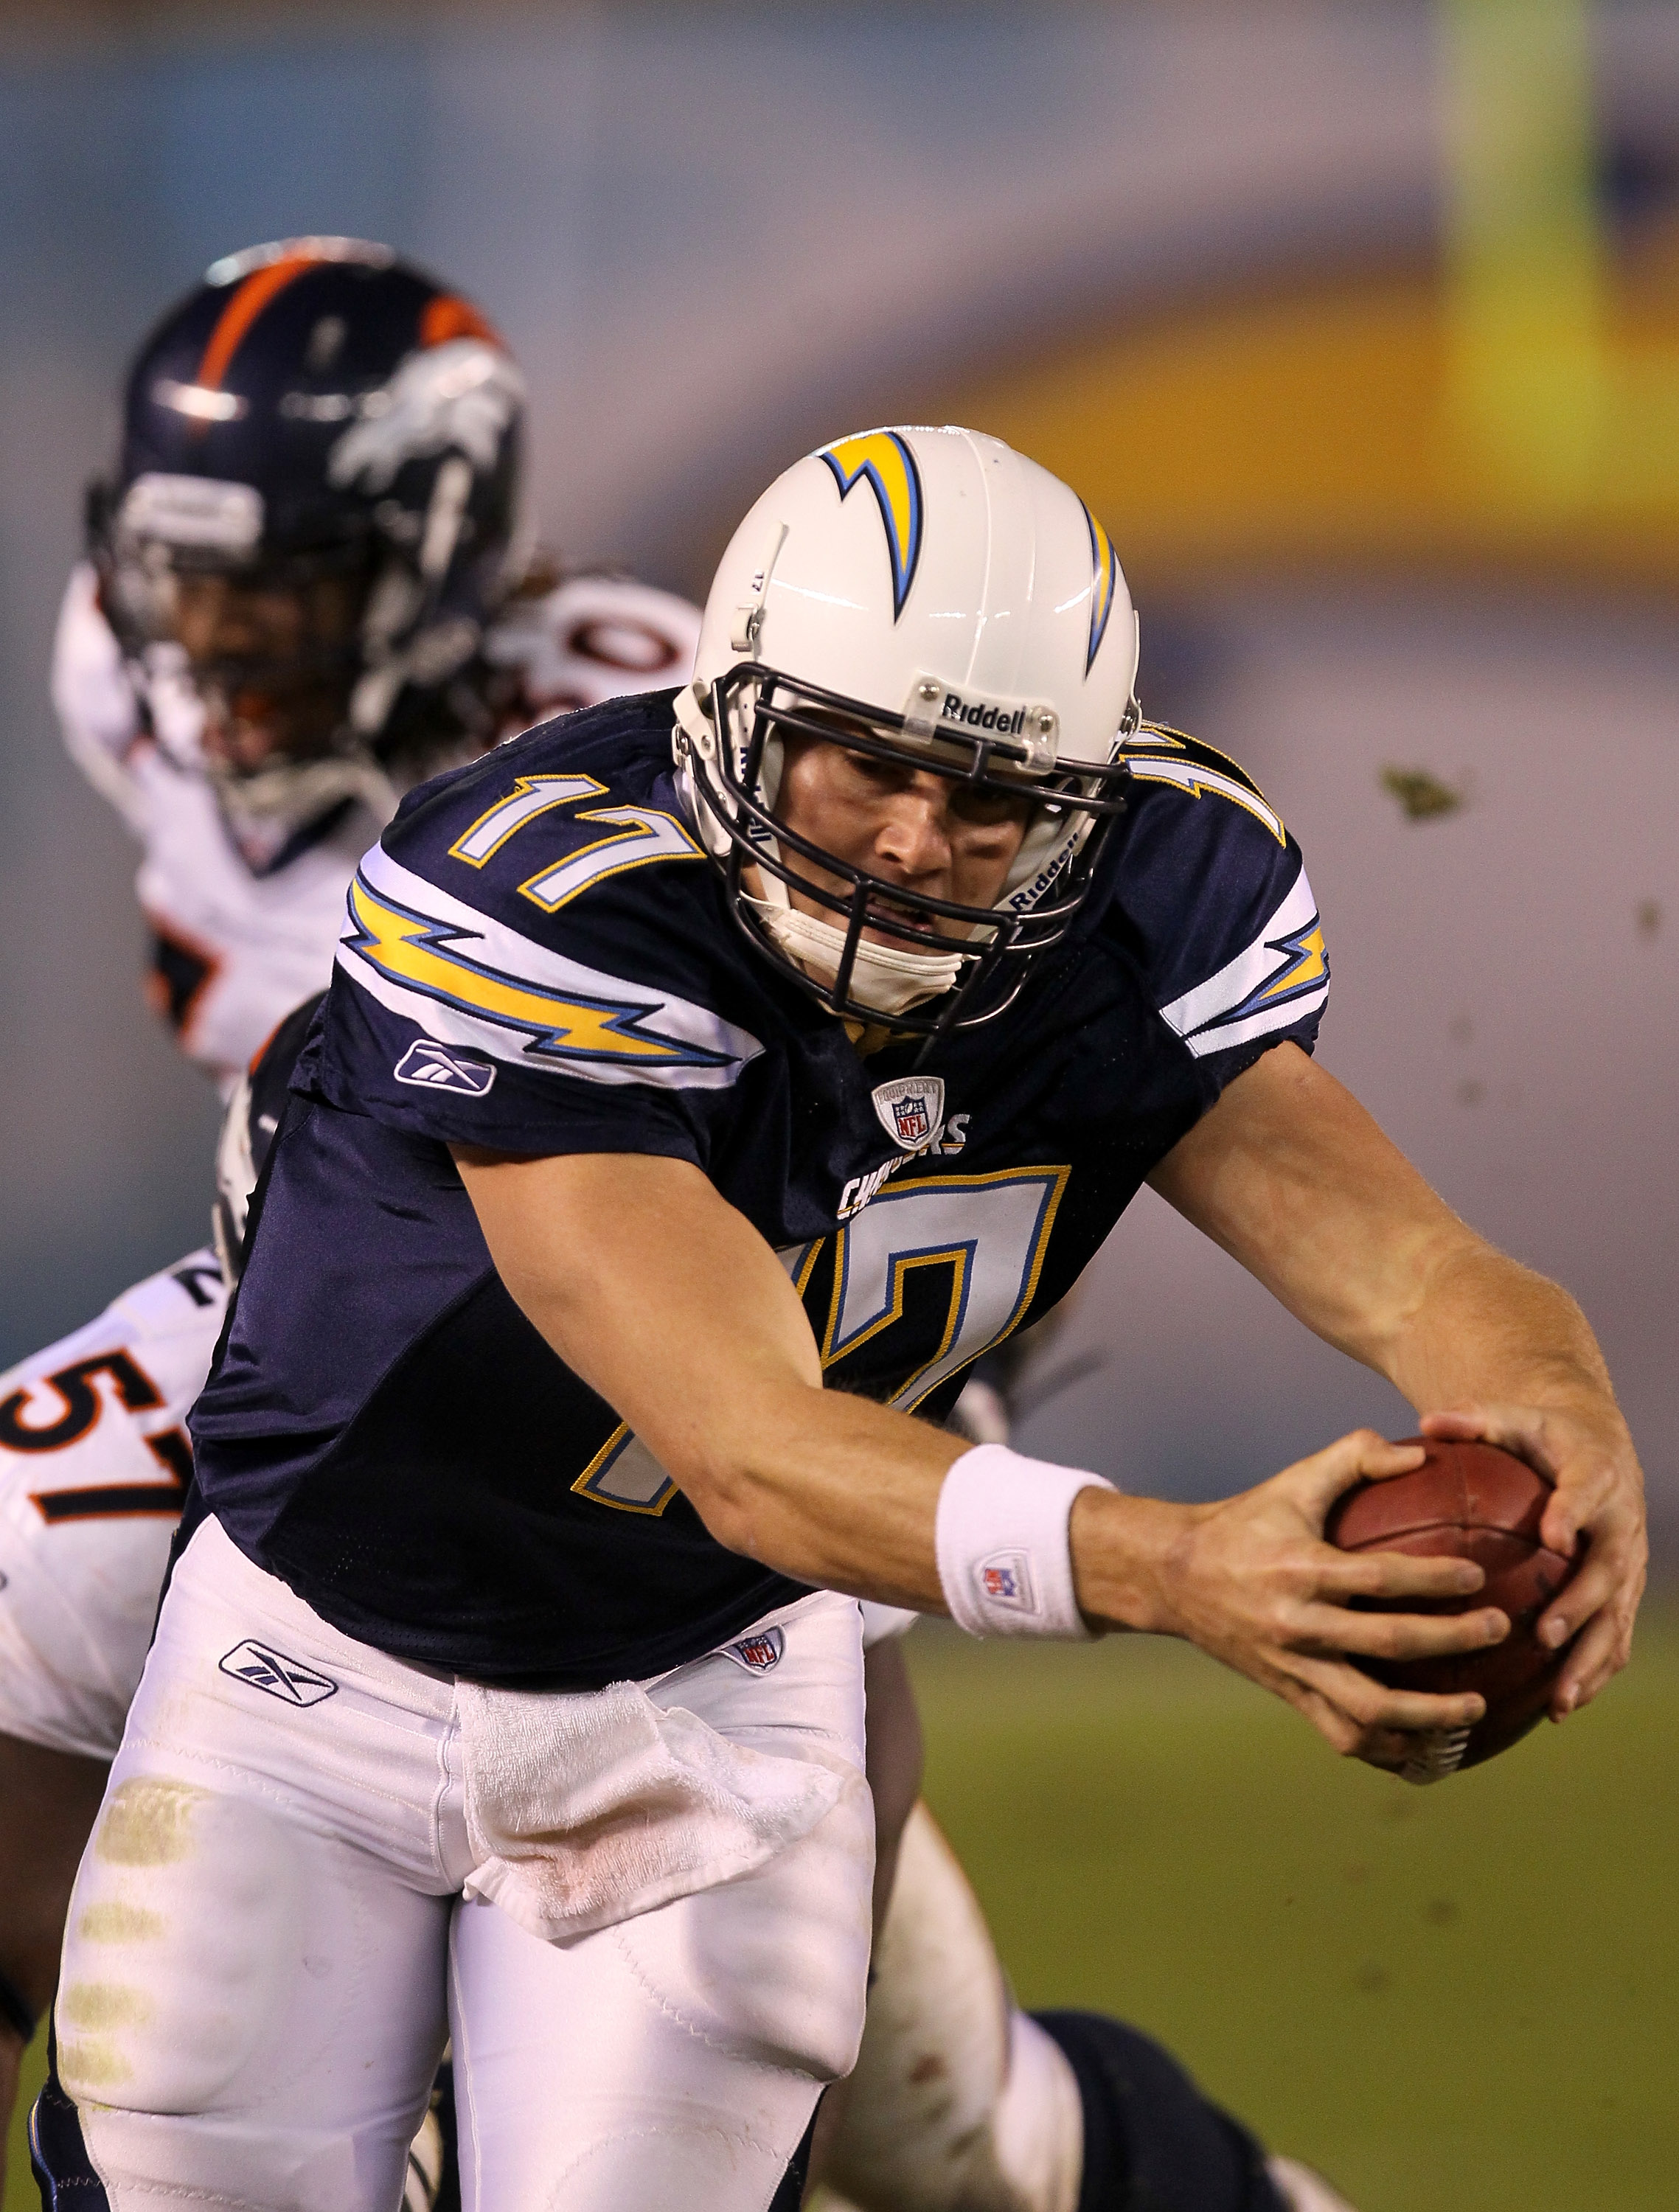 SAN DIEGO - NOVEMBER 22:  Quarterback Philip Rivers #17 of the San Diego Chargers reaches the ball to the sideline down marker as he scrambles for a first down against the Denver Broncos at Qualcomm Stadium on November 22, 2010 in San Diego, California. T